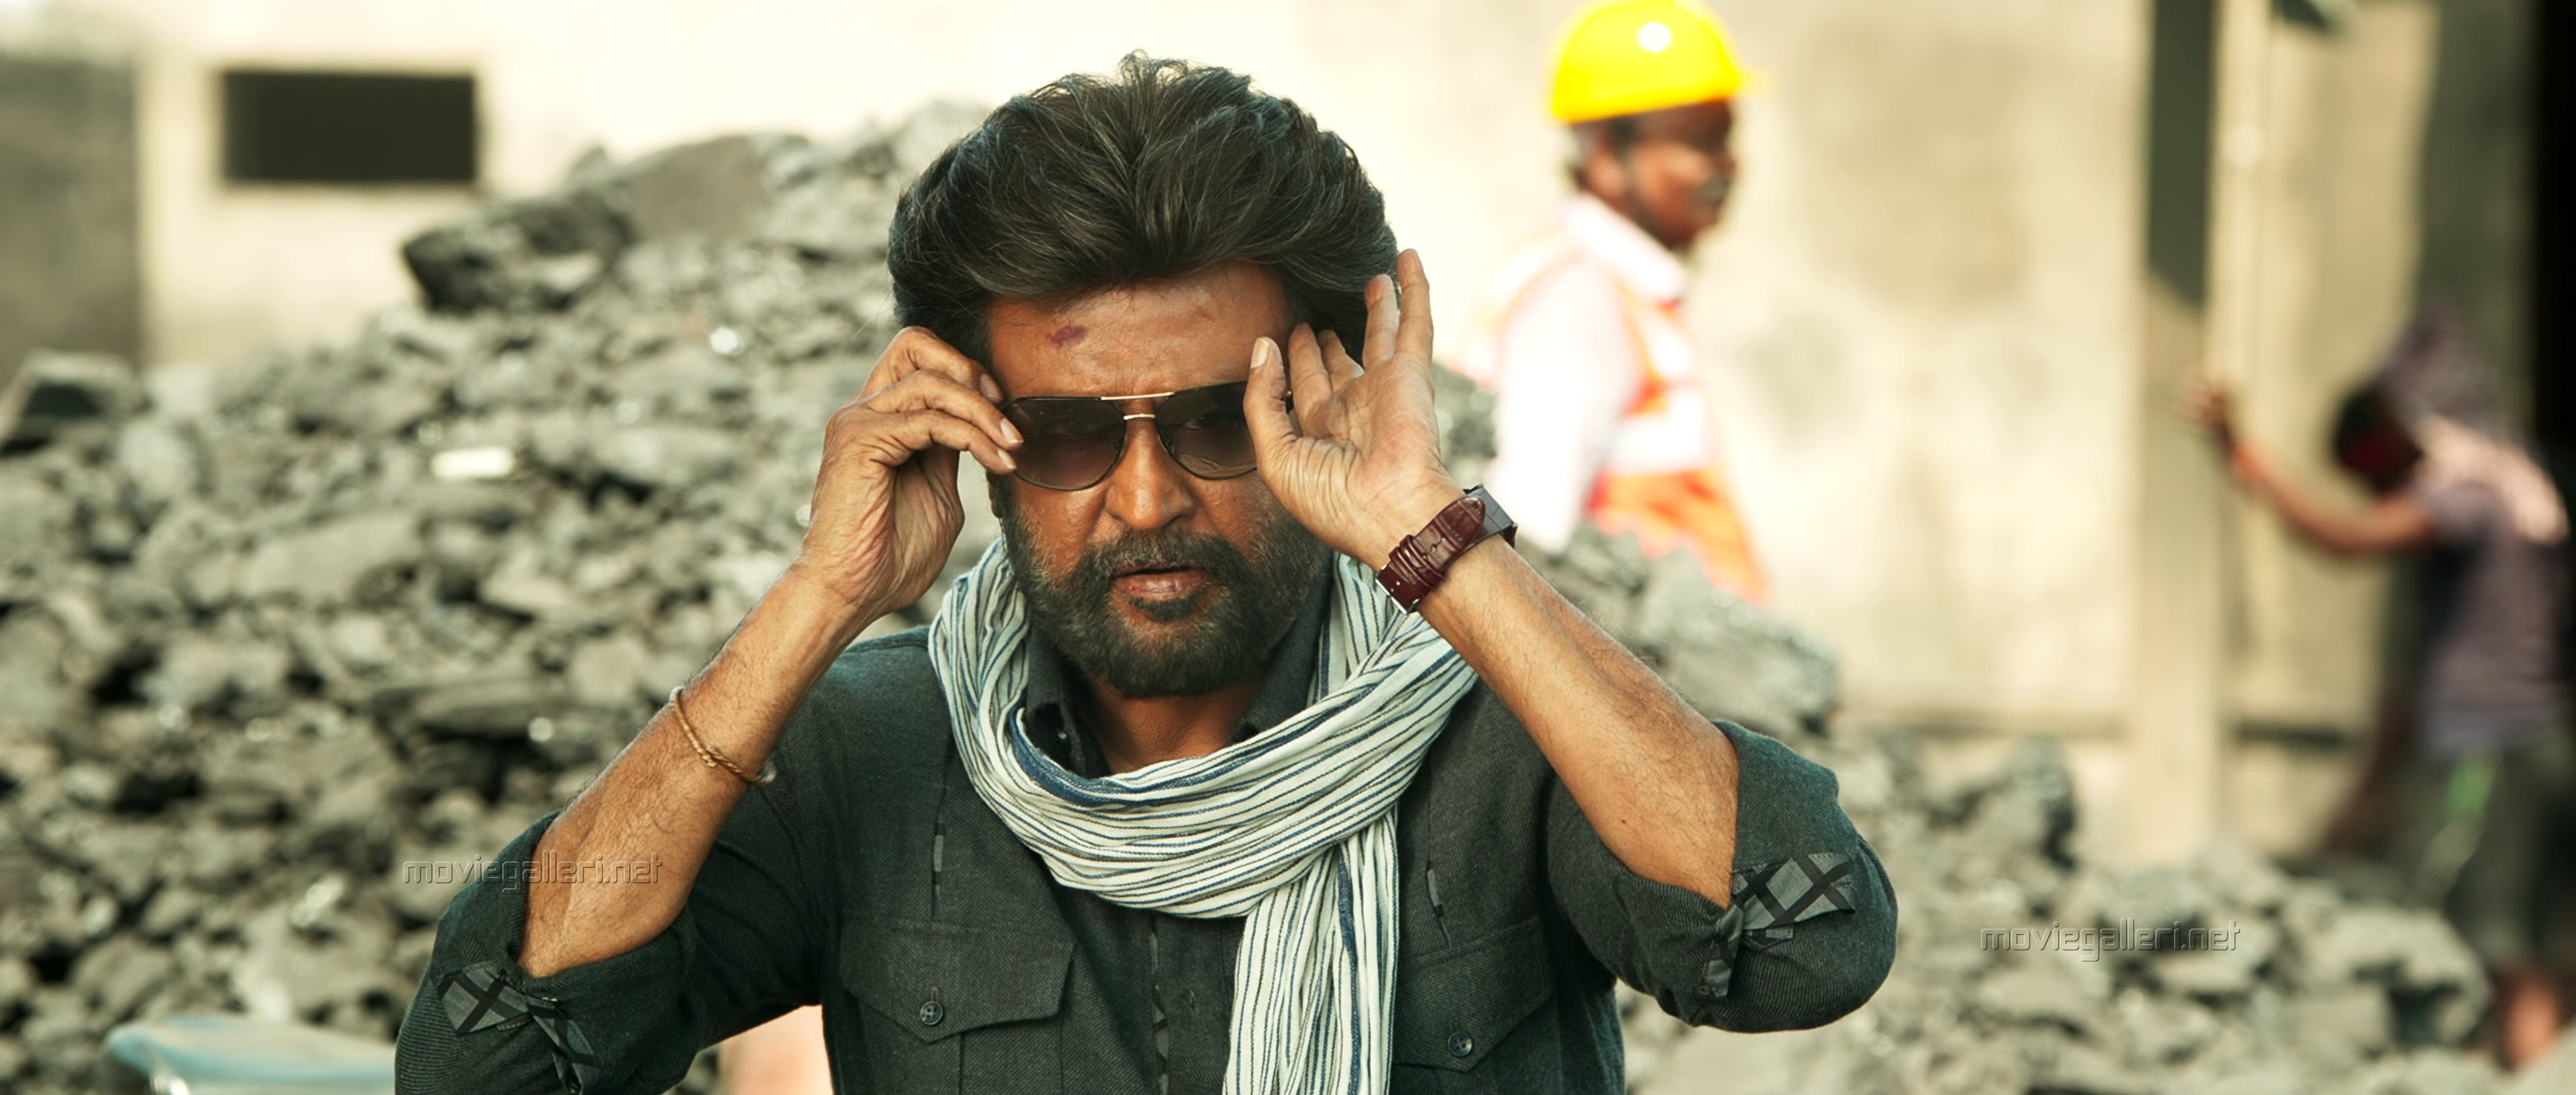 Petta Rajinikanth HD Images